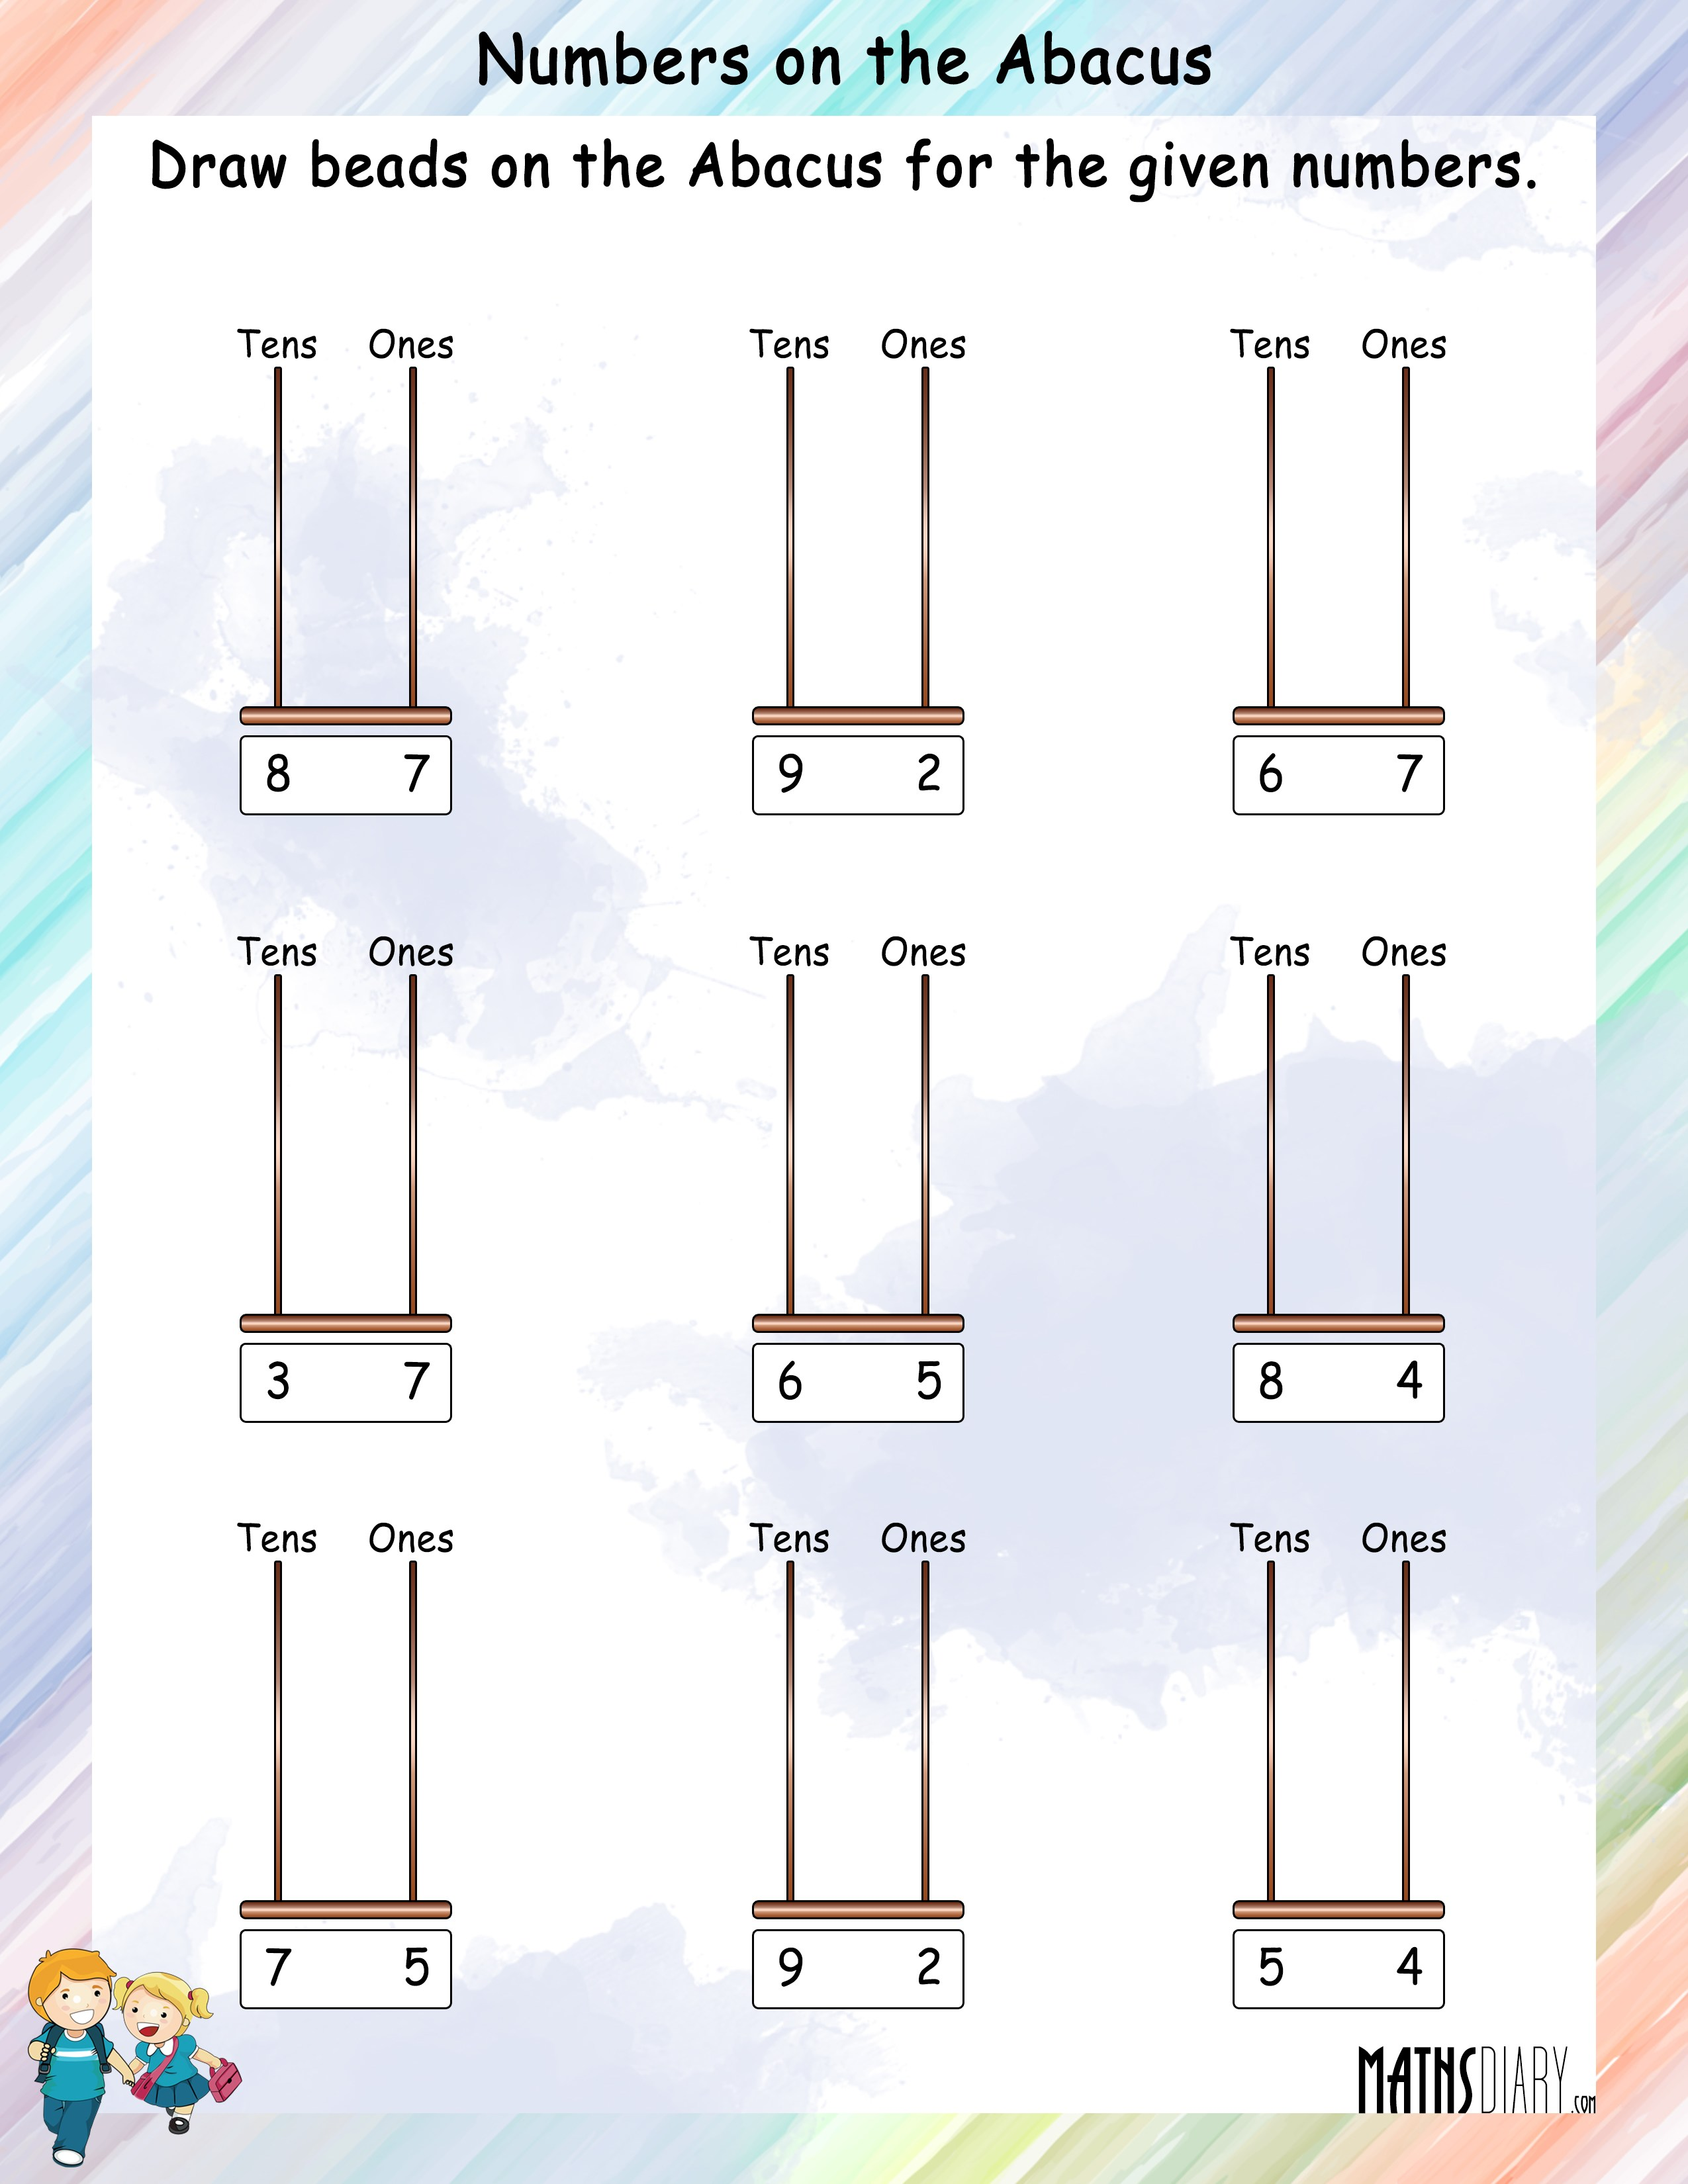 Draw Beads On The Abacus For The Given Number